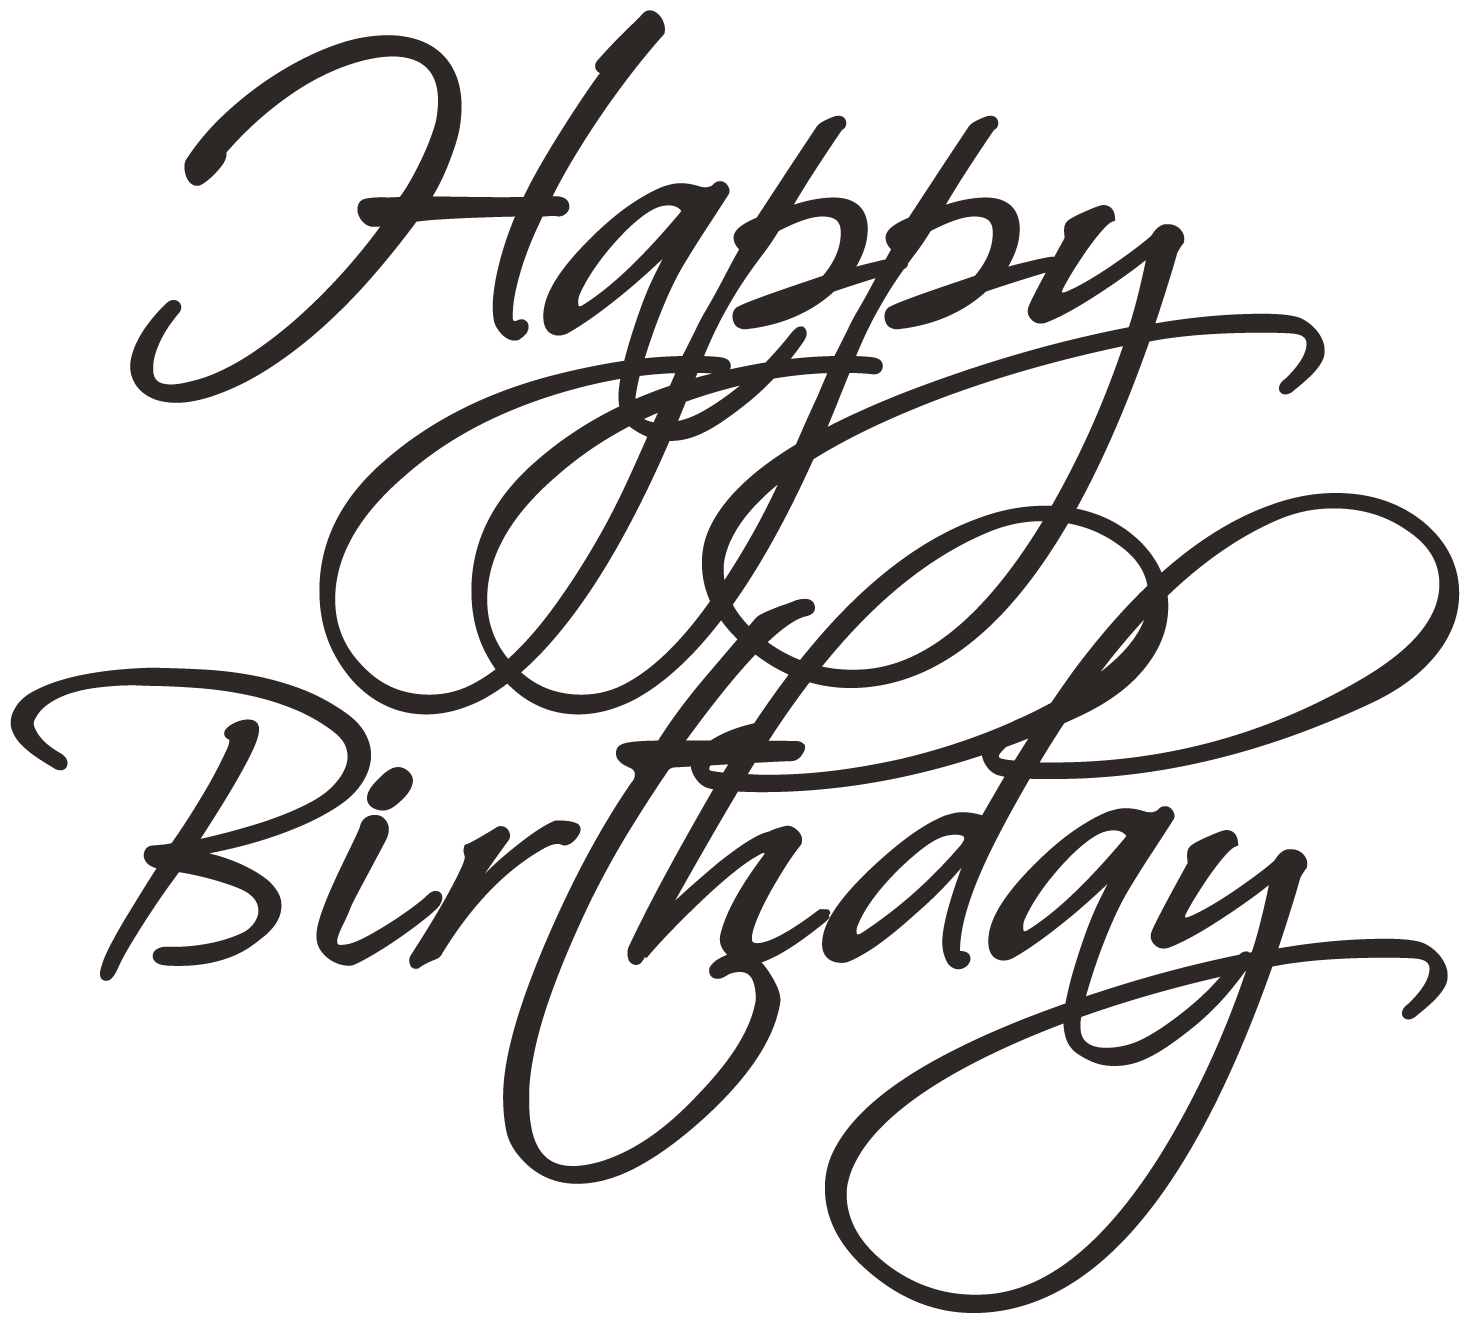 happy birthday writing Enter the writingcom recipient's username or email address: send to multiple recipients by separating usernames with commas (up to a maximum of 3 recipients.